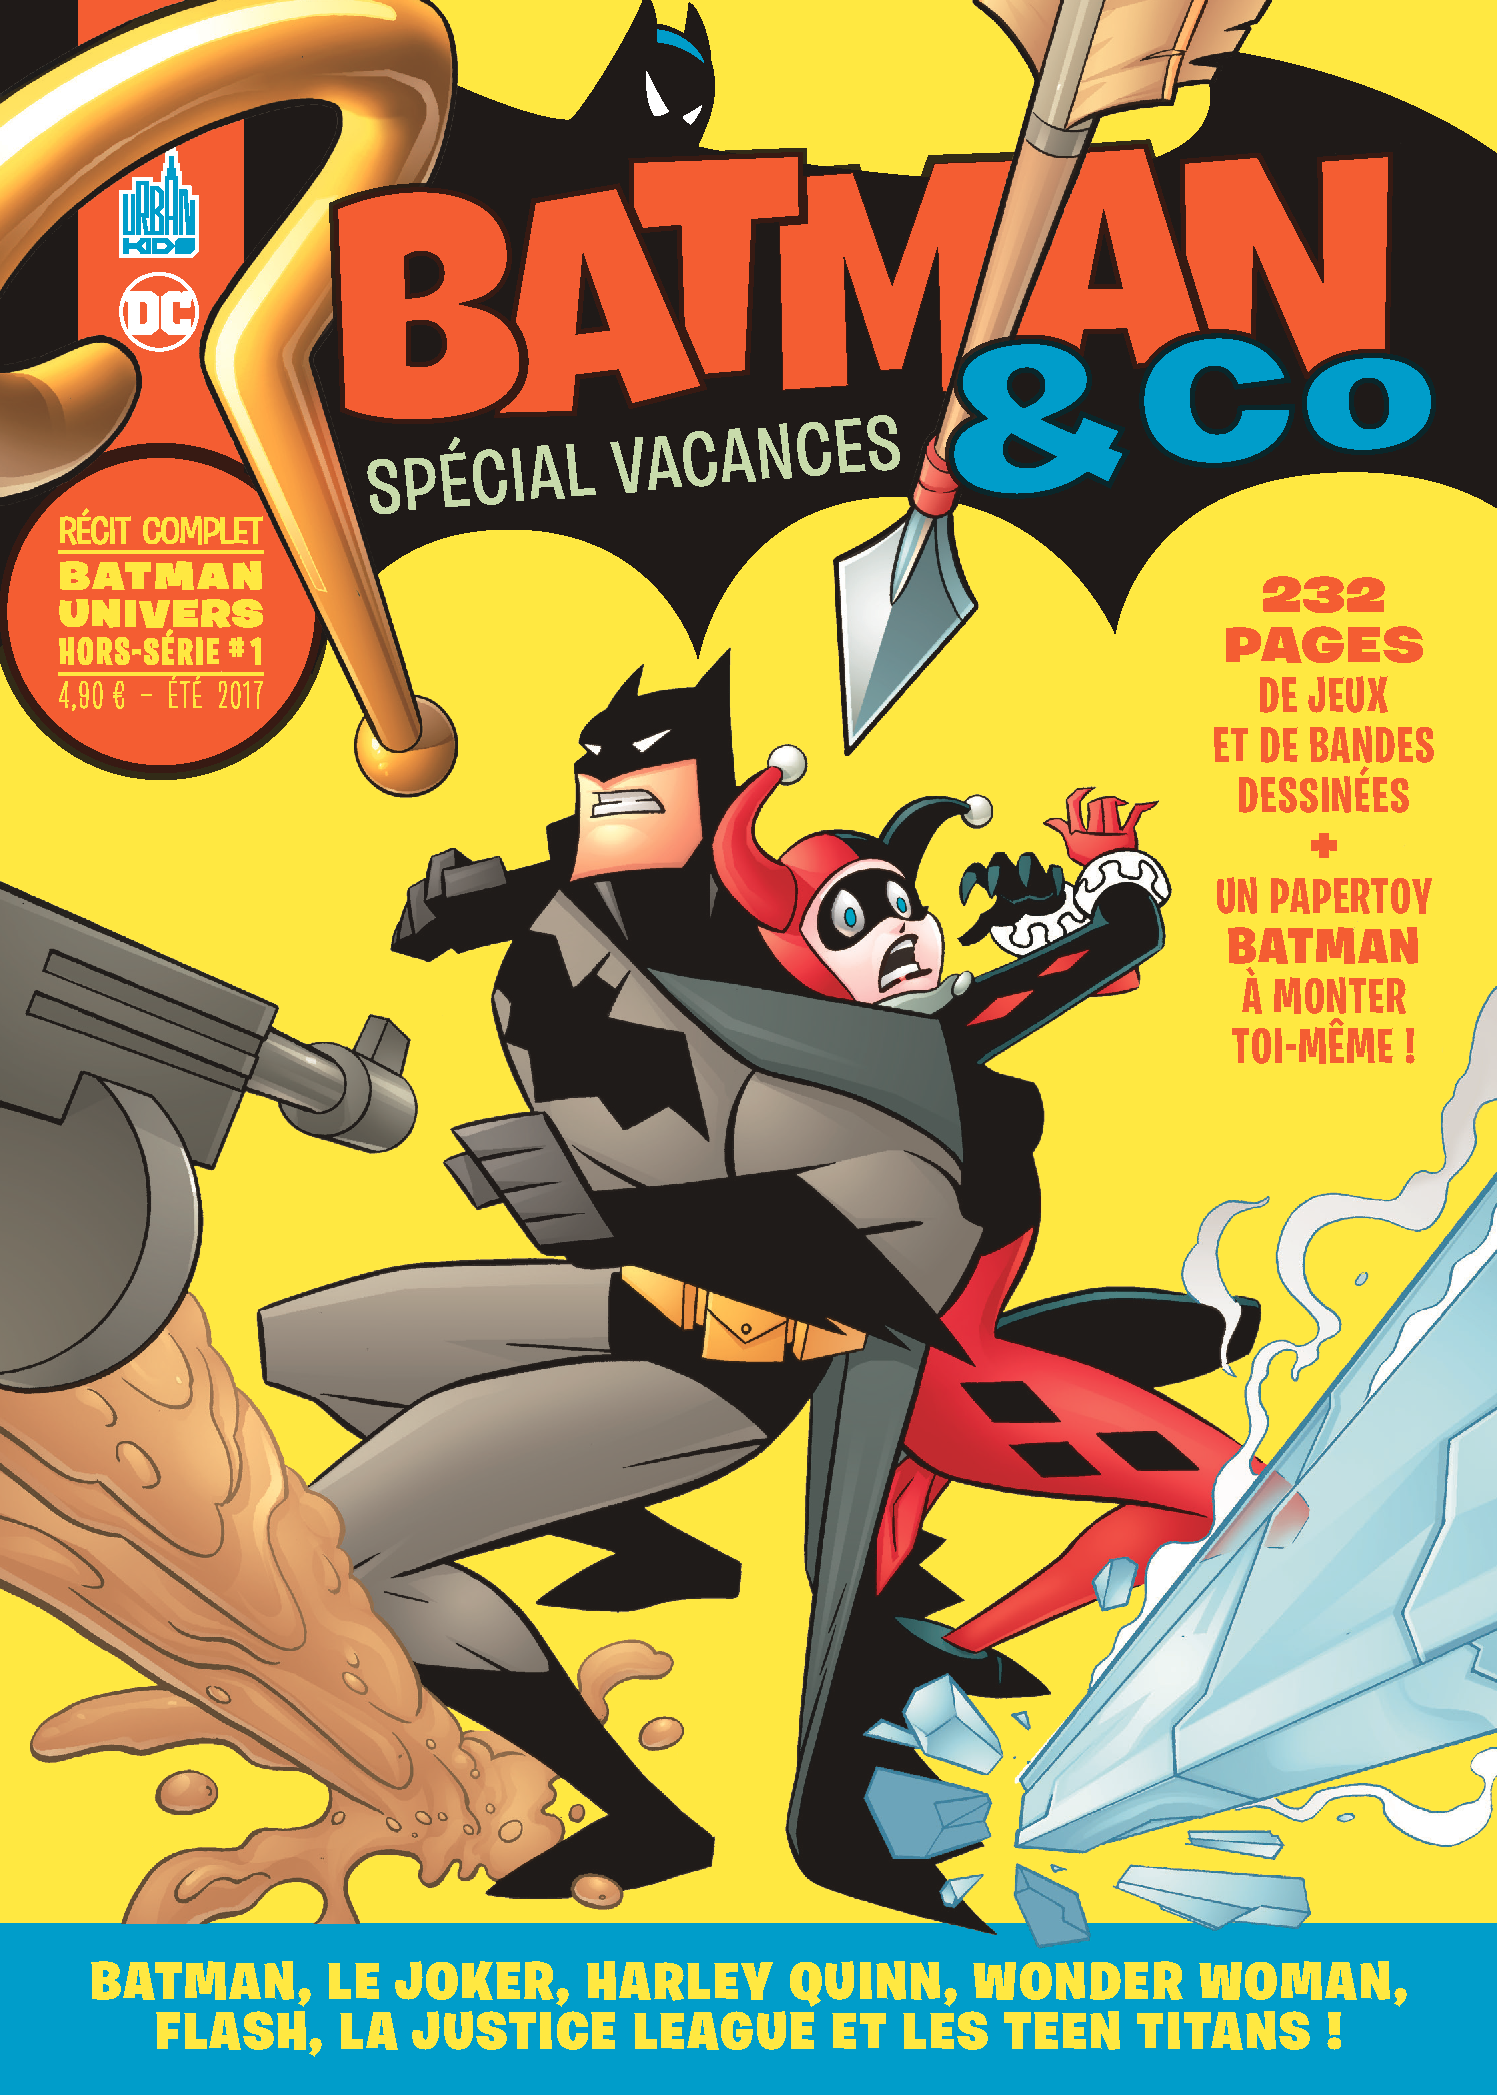 urban comics annonce un kiosque estival  u0026quot batman  u0026 co